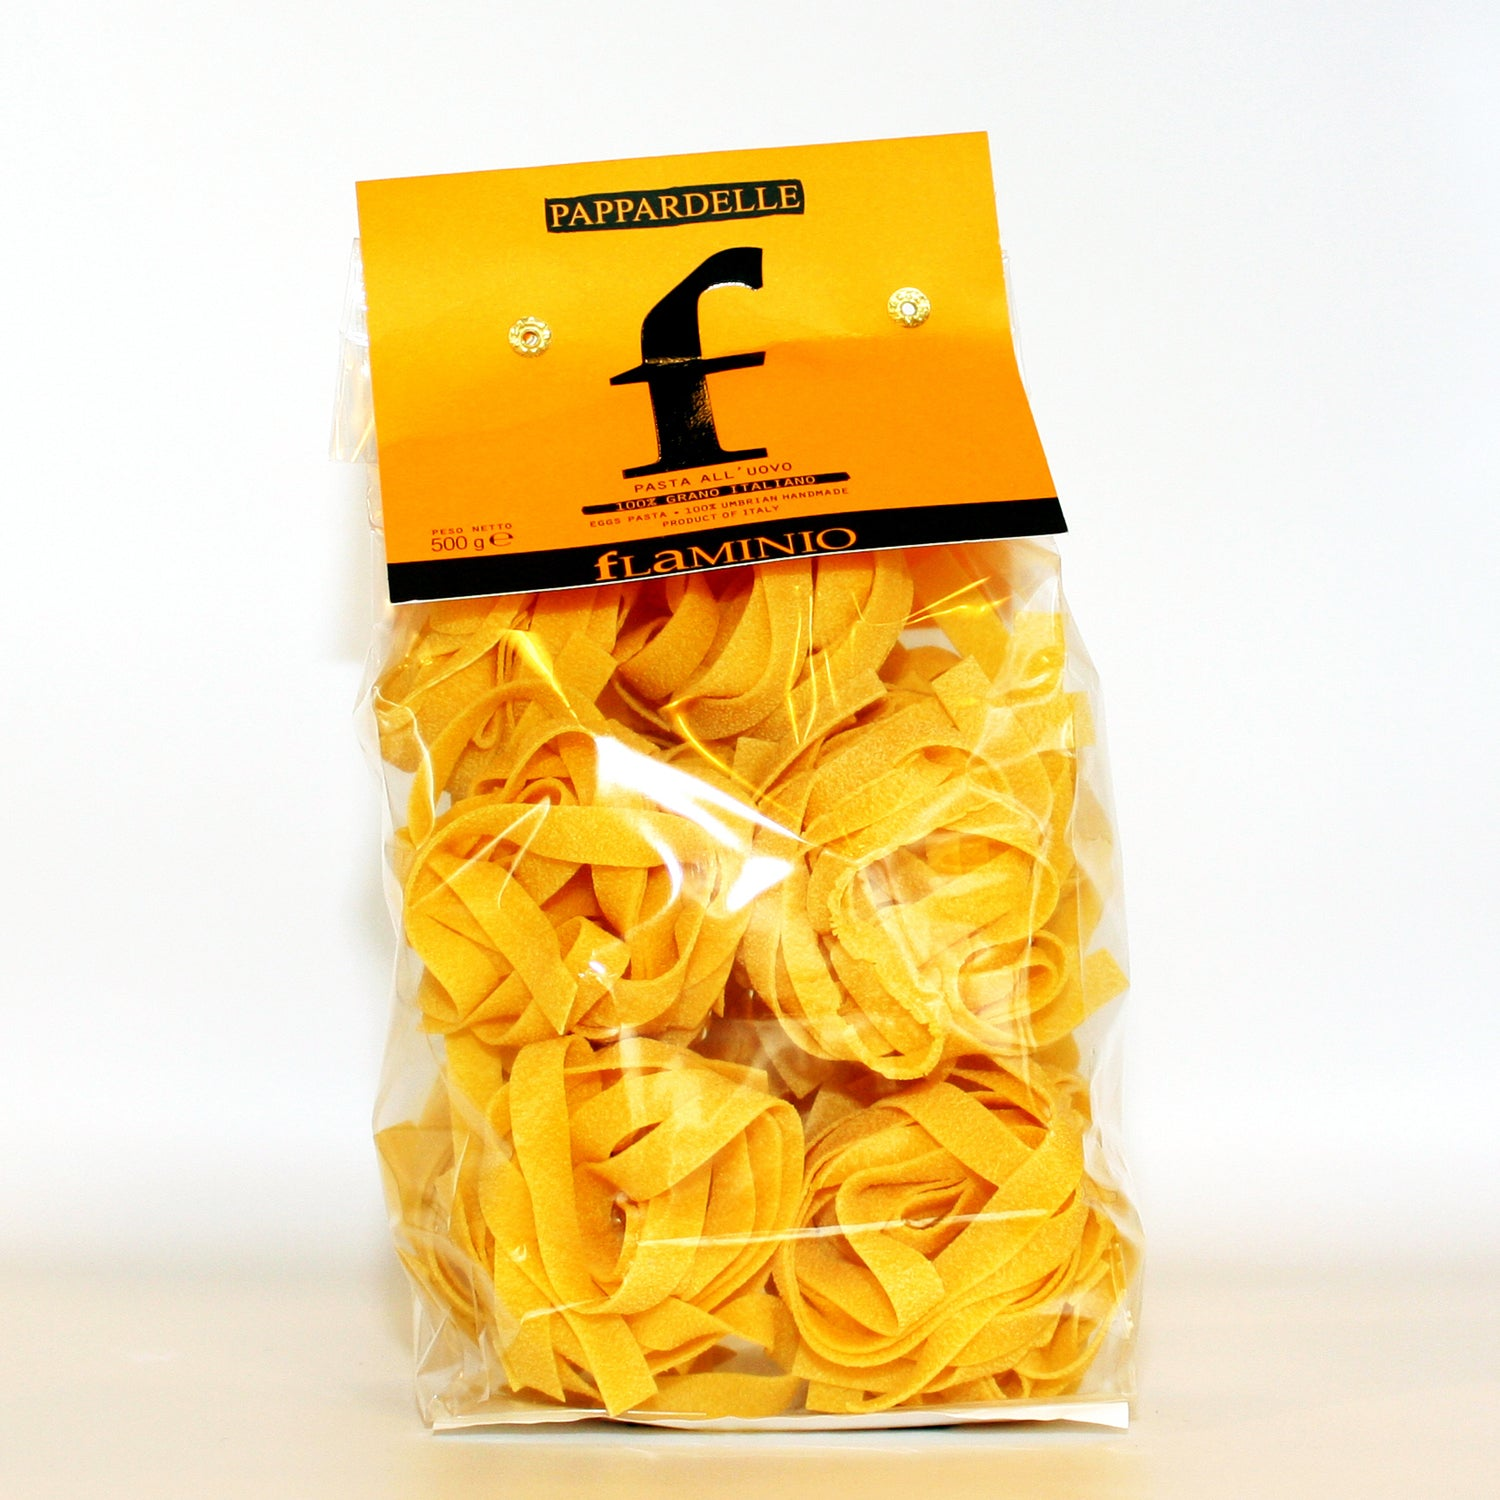 Pappardelle Flaminio all'uovo 500 gr.